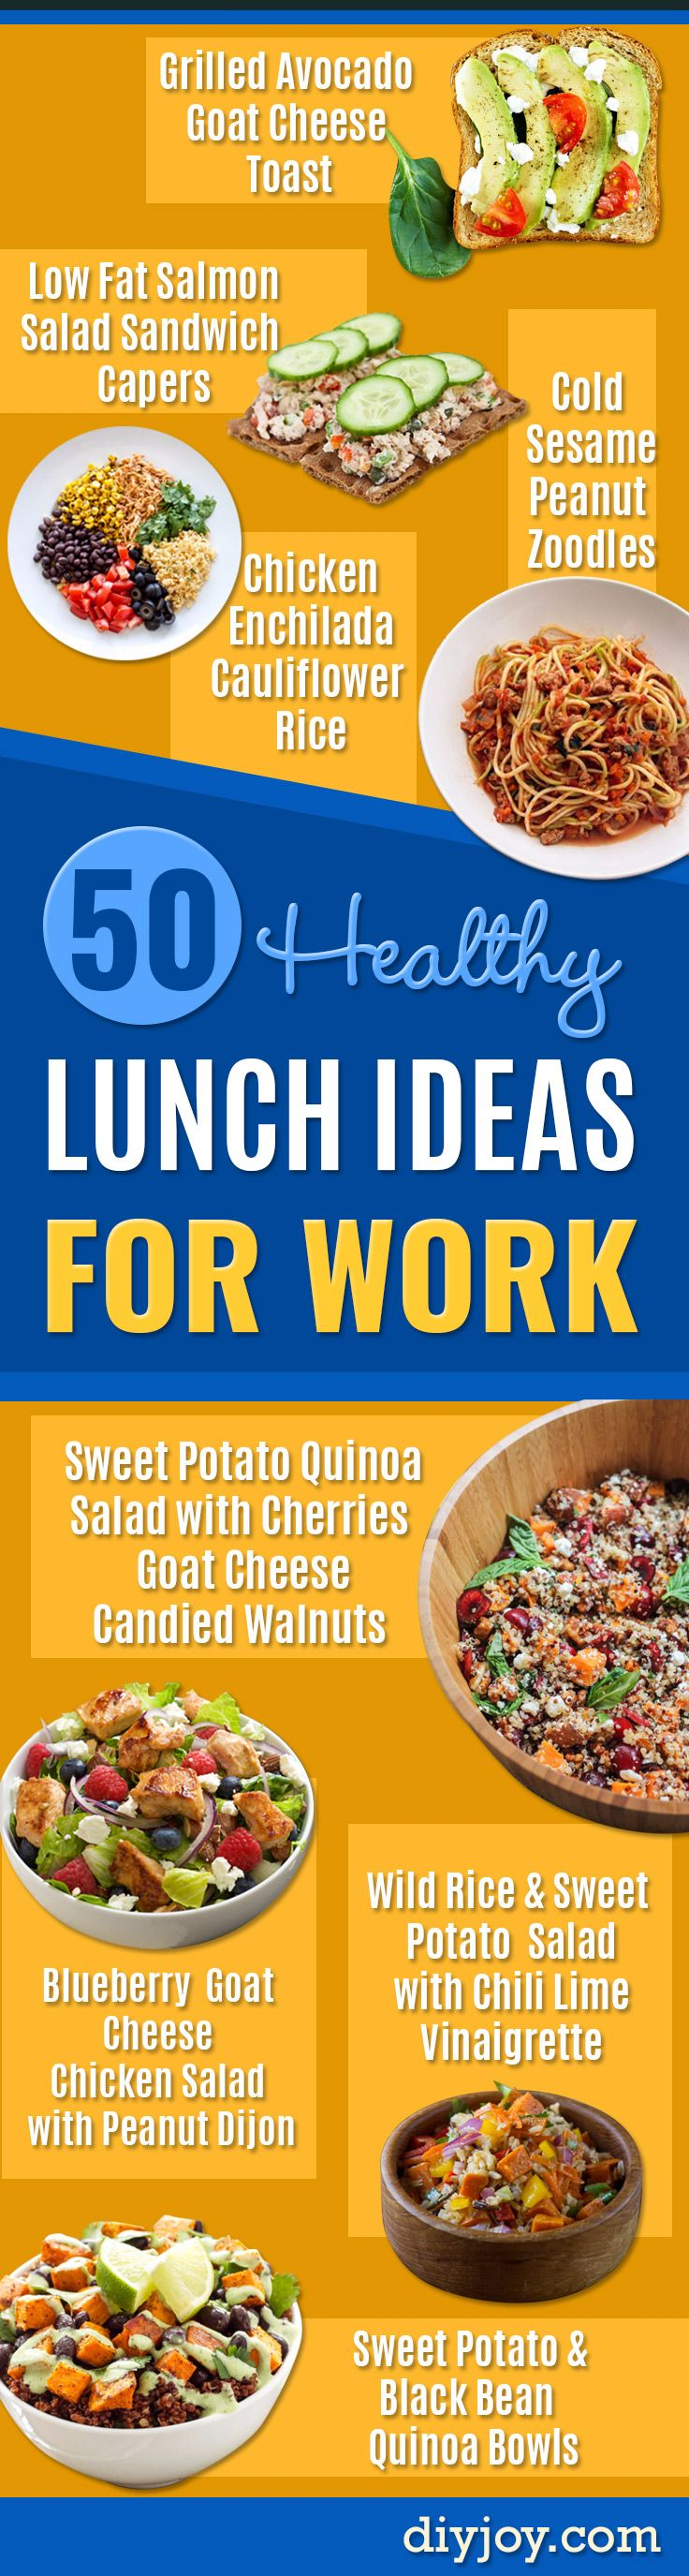 best 45 lunch at work ideas on pinterest healthy meals eat clean